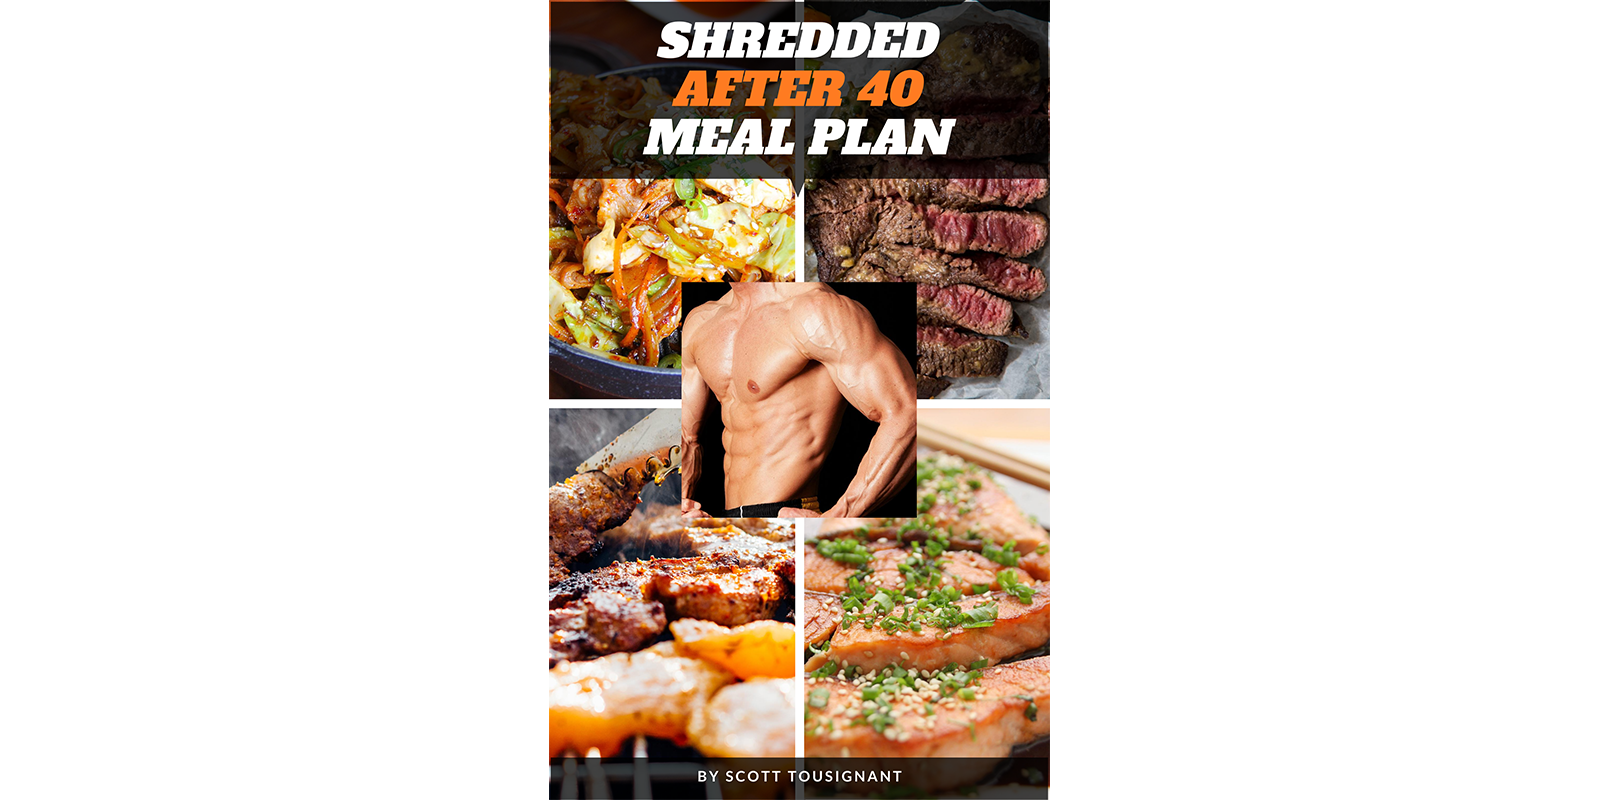 Shredded After 40 Course Reviews